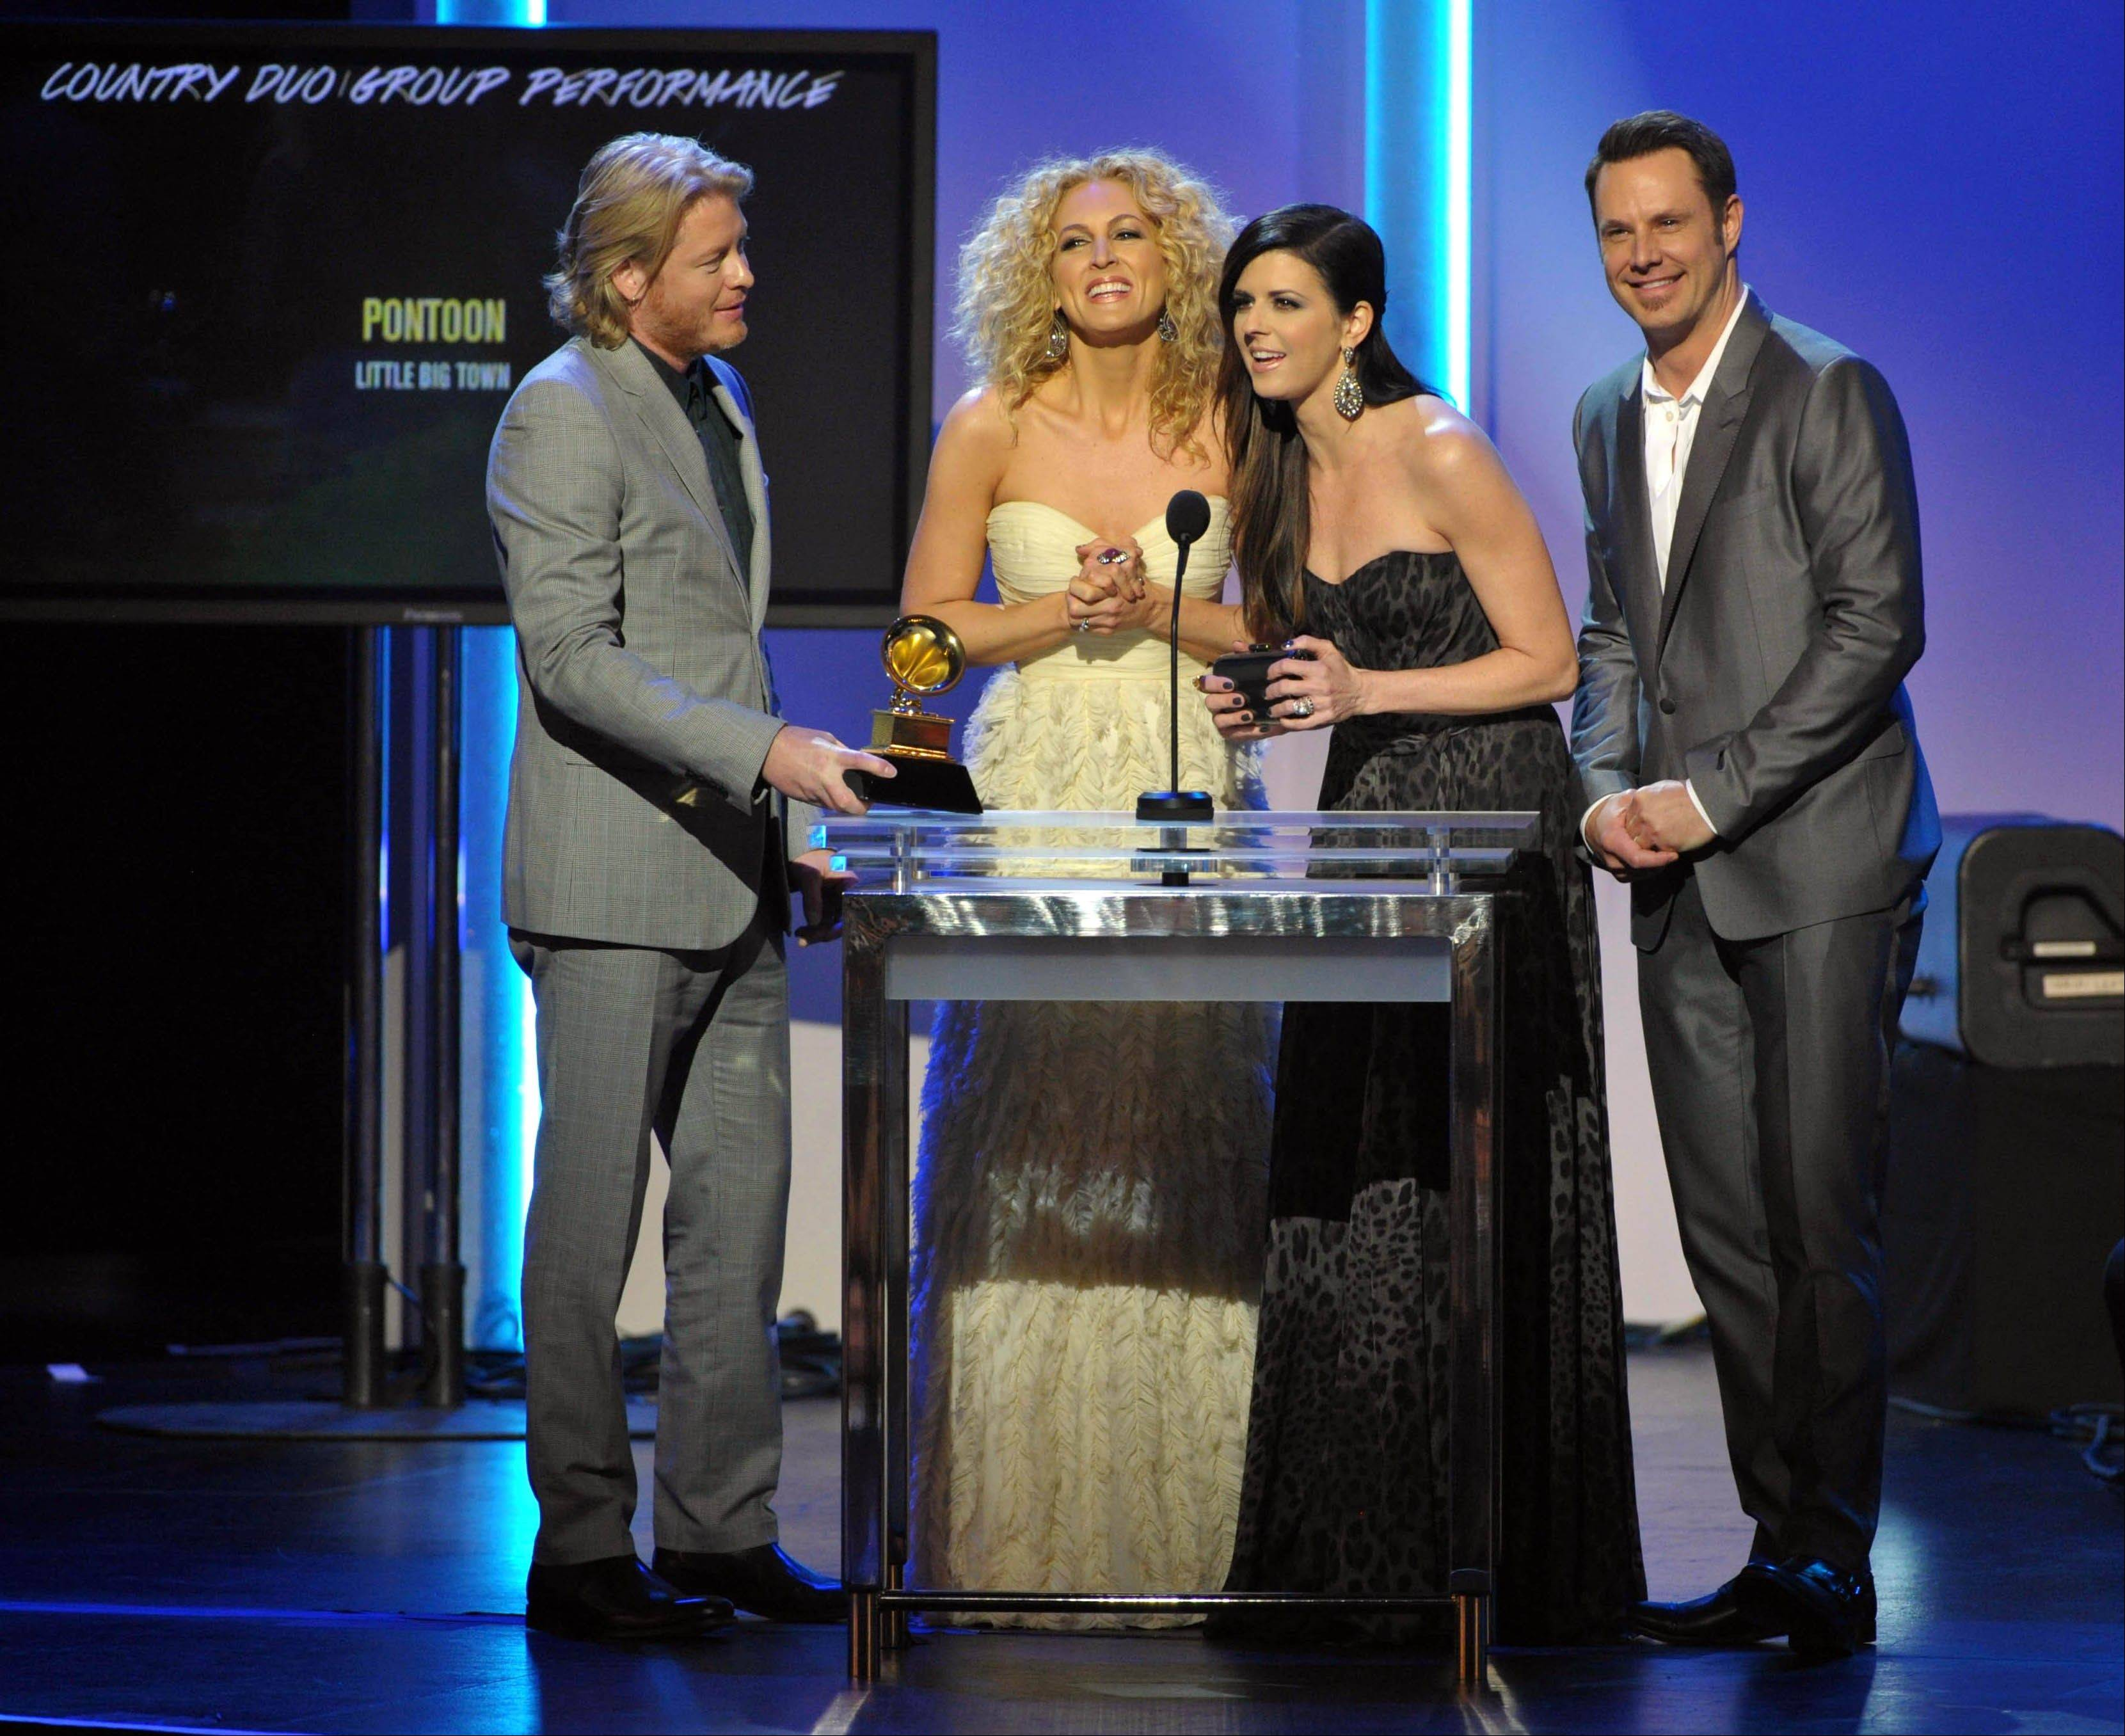 "Philip Sweet, from left, Kimberly Schlapman, Karen Fairchild, and Jimi Westbrook, of the band Little Big Town, accept the award for country duo/group performance for ""Pontoon"" during the pre-telecast at the 55th annual Grammy Awards on Sunday, Feb. 10, 2013, in Los Angeles."